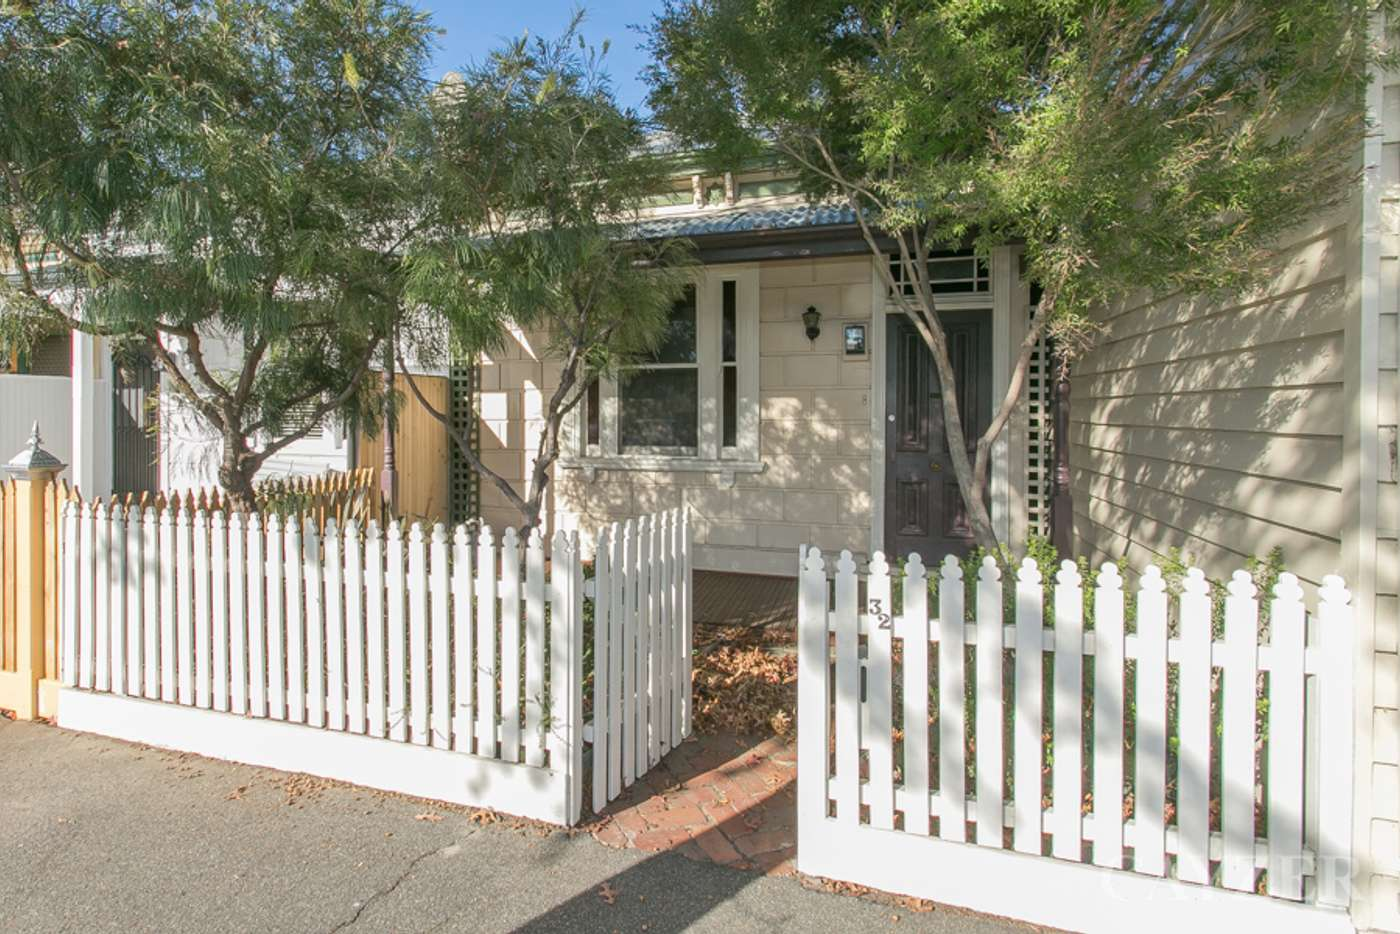 Main view of Homely house listing, 32 Derham Street, Port Melbourne VIC 3207